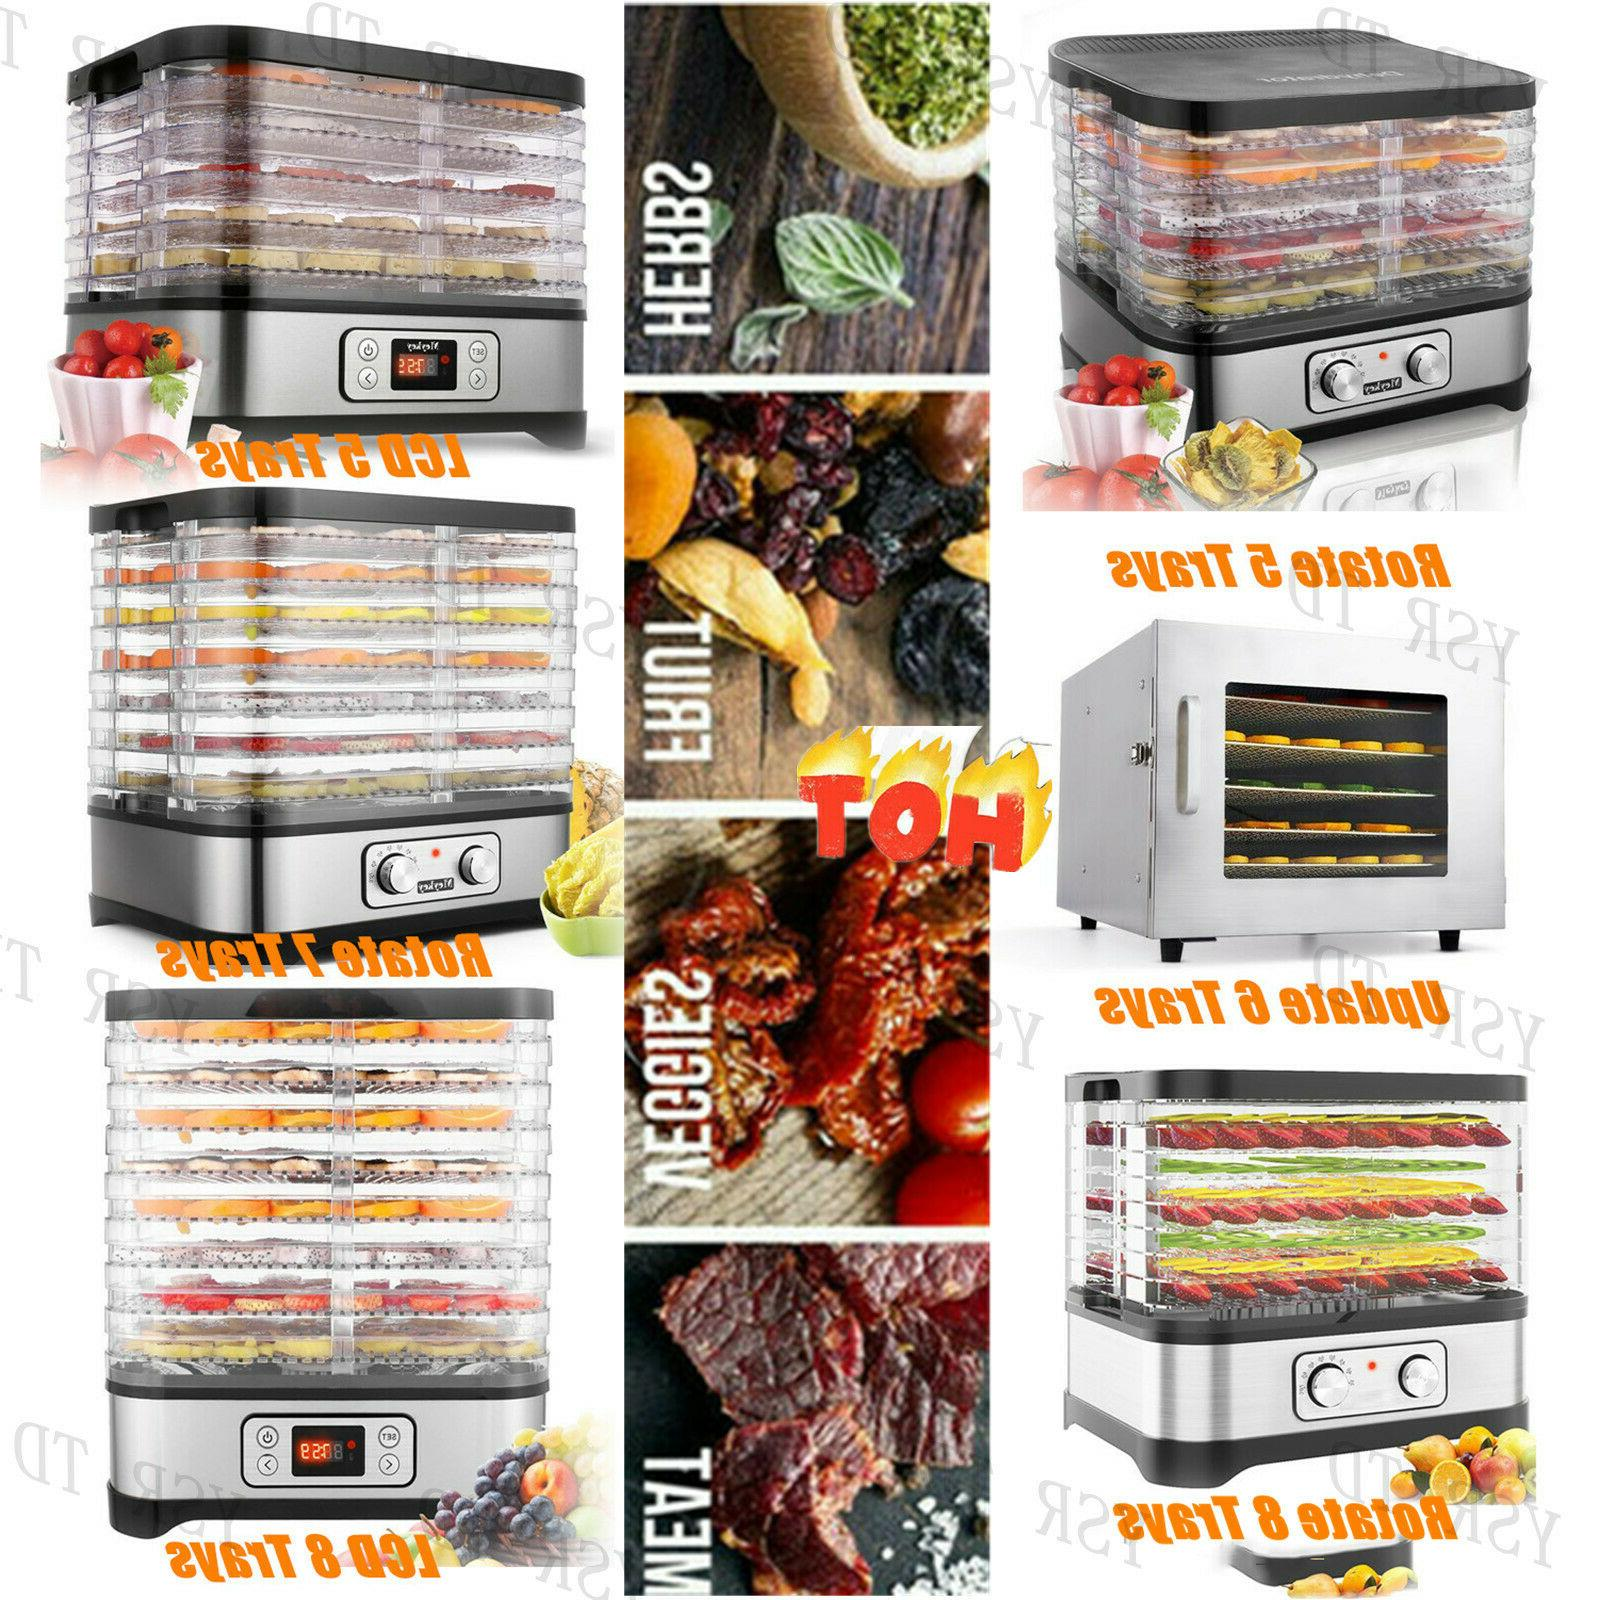 HOMDOX Food Dehydrator 8 Tier Stainless Steel Fruit Jerky Me